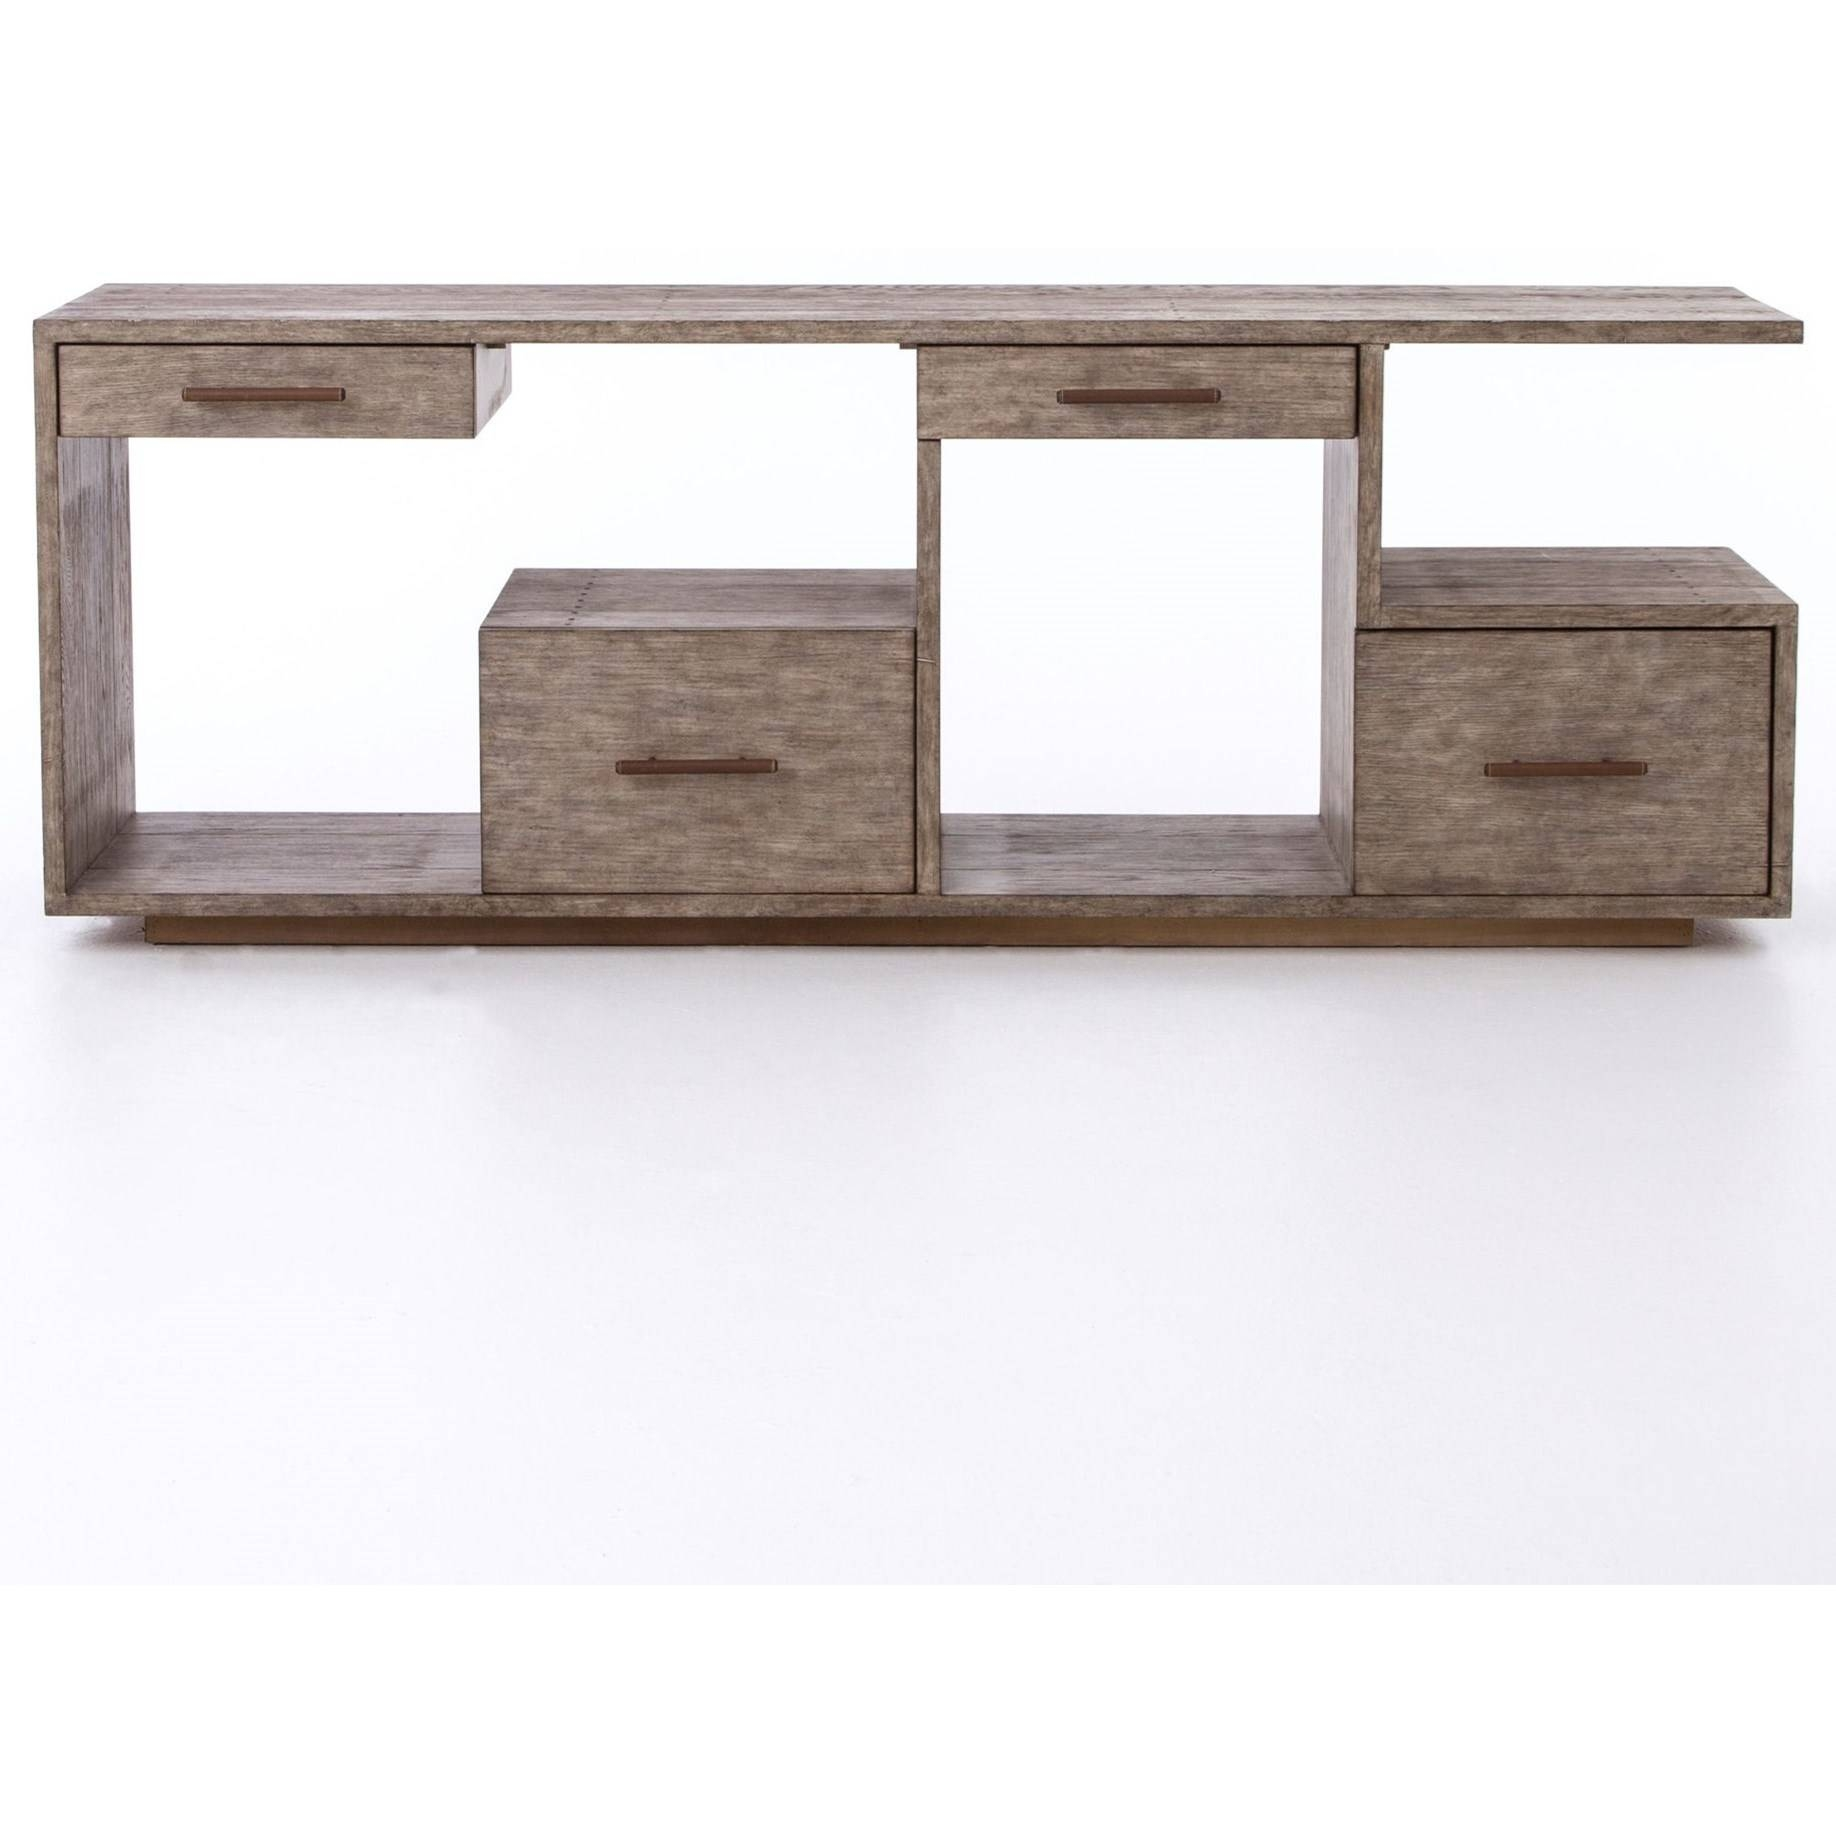 Debbie Console Table With Driftwood Finishfour Hands | Wolf pertaining to Four Hands Sideboards (Image 2 of 30)